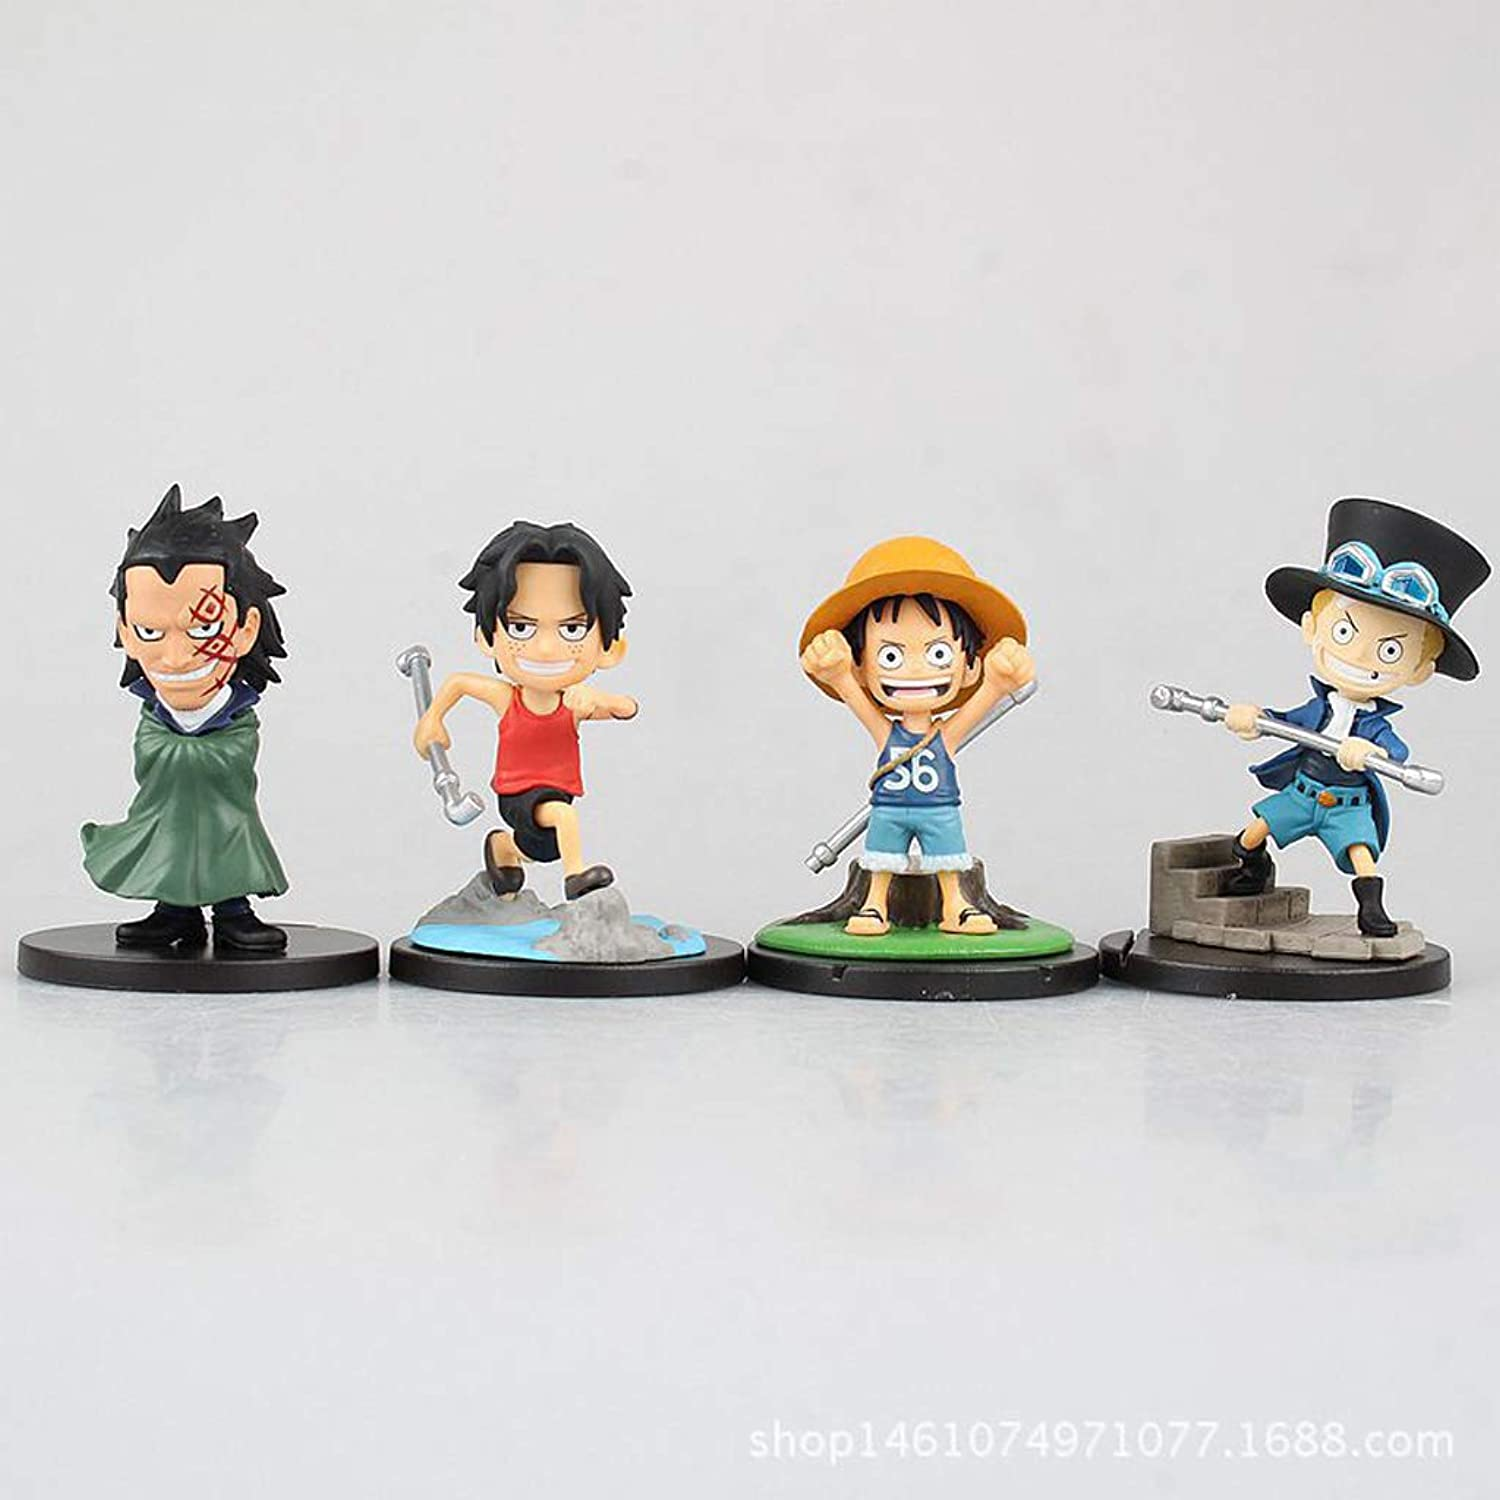 Toy Statue Toy Model Cartoon Character Gift Decoration Birthday Gift Q Edition Combination SHWSM (color   C)